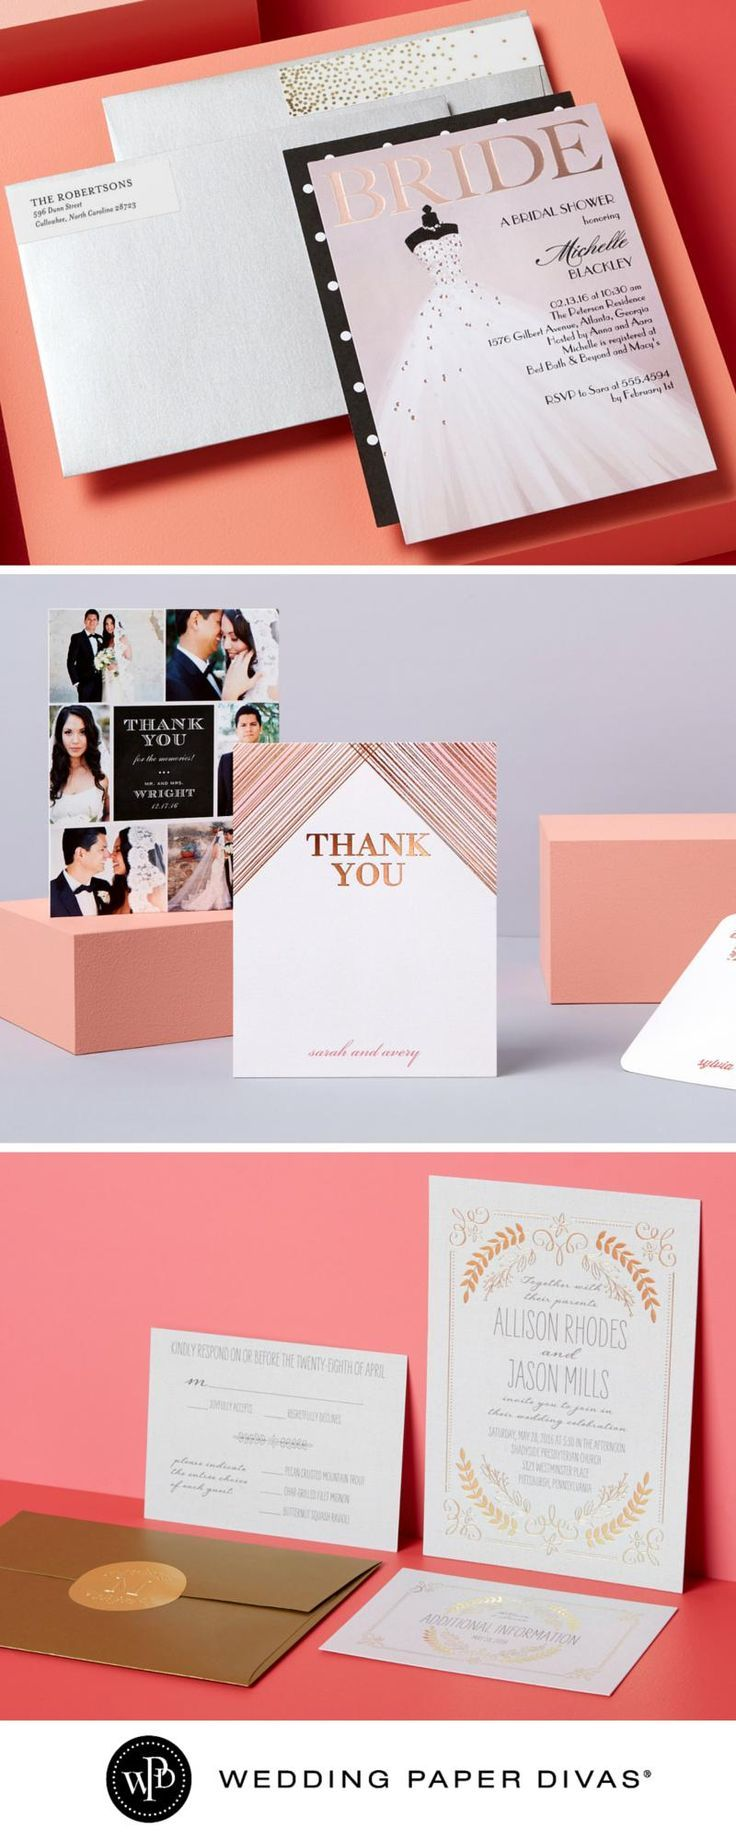 wedding invitations divas%0A Wedding Invitations by Style and Color at Wedding Paper Divas